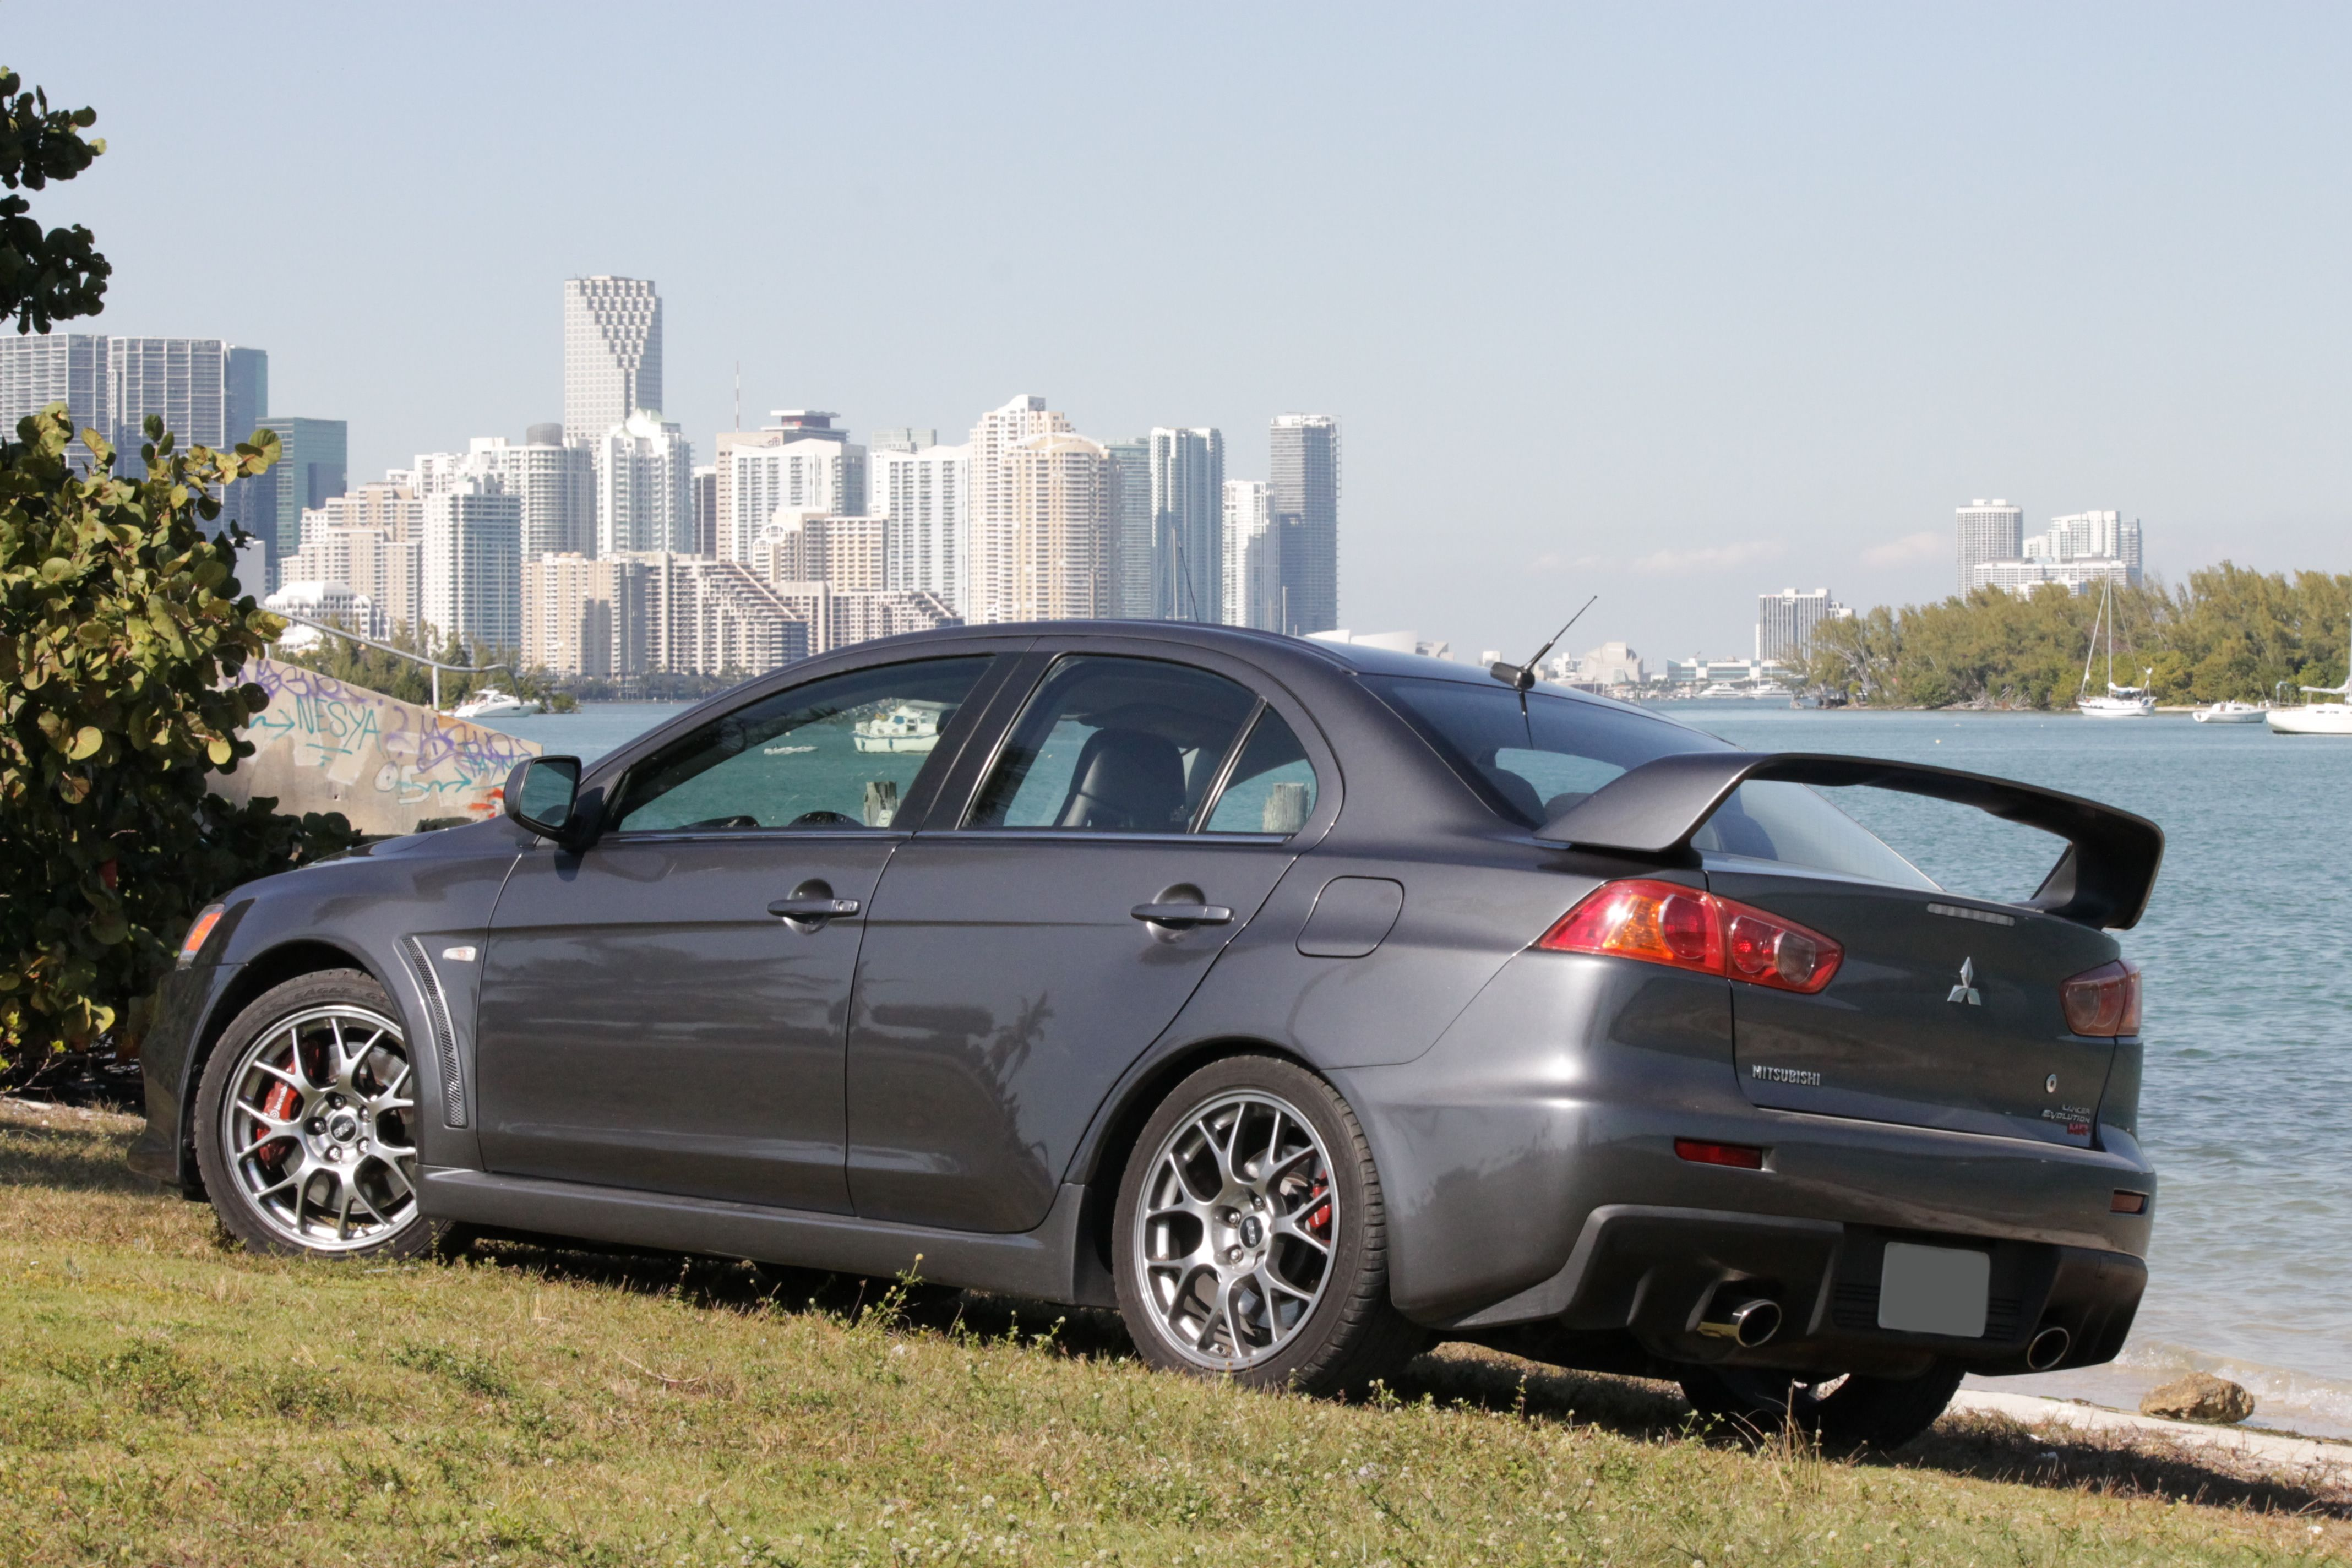 mitsubishi lancer evolution x mr pin this car. Black Bedroom Furniture Sets. Home Design Ideas